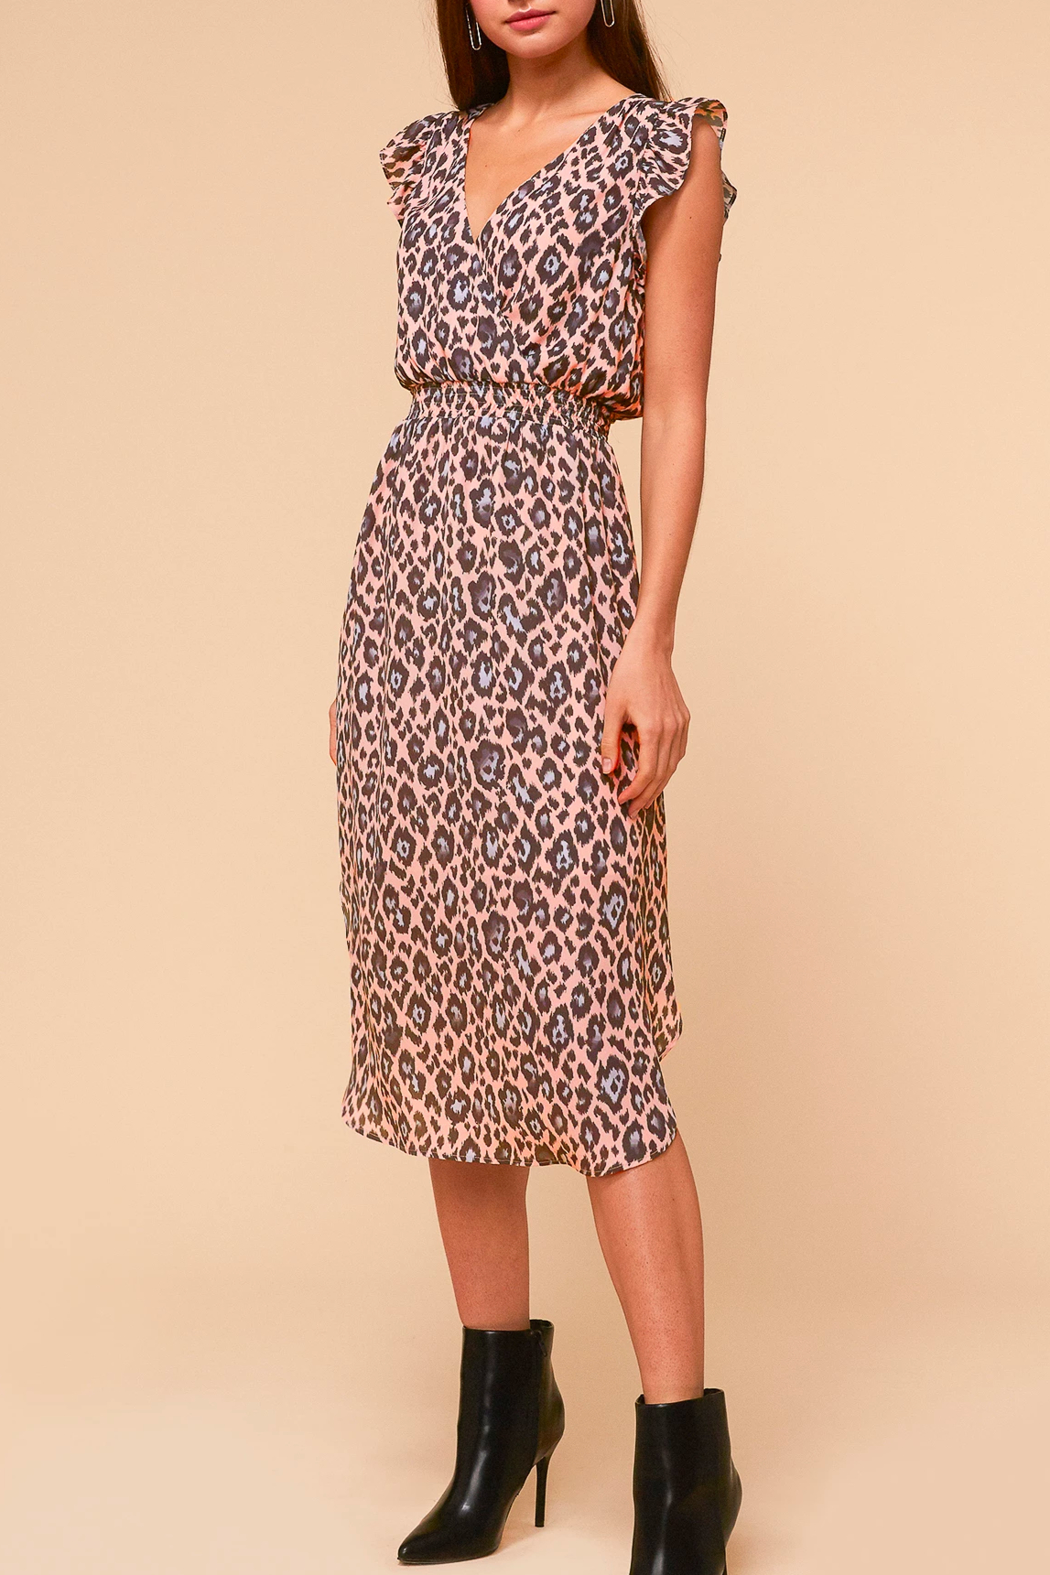 Adelyn Rae Camille Animal-Print Dress - Side Cropped Image